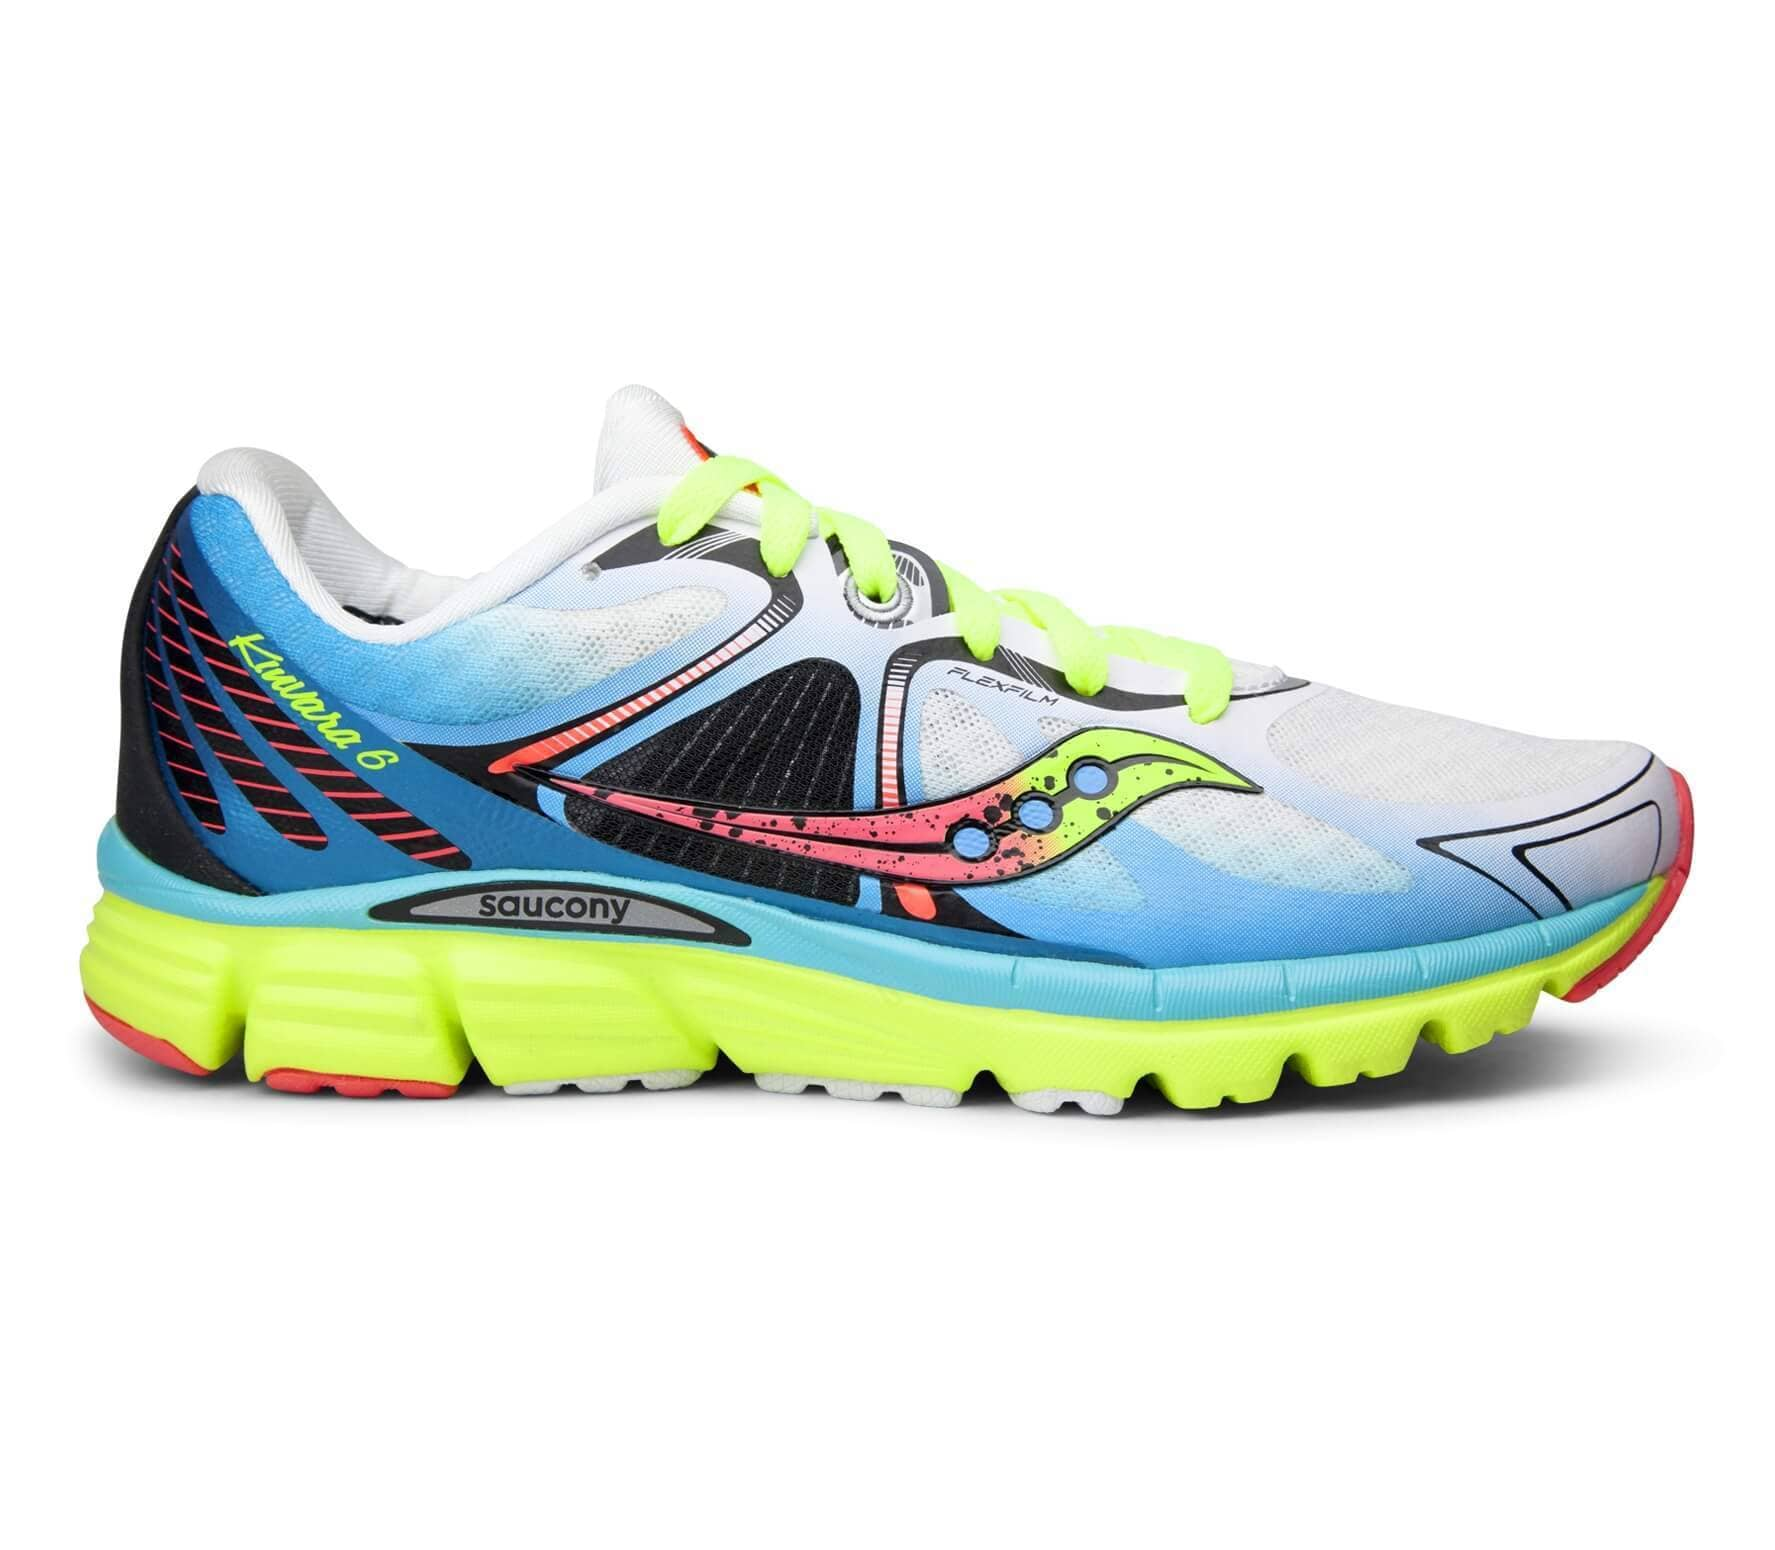 d7561dc9e2fa Saucony - Kinvara 6 women s running shoes (white blue) - buy it at ...